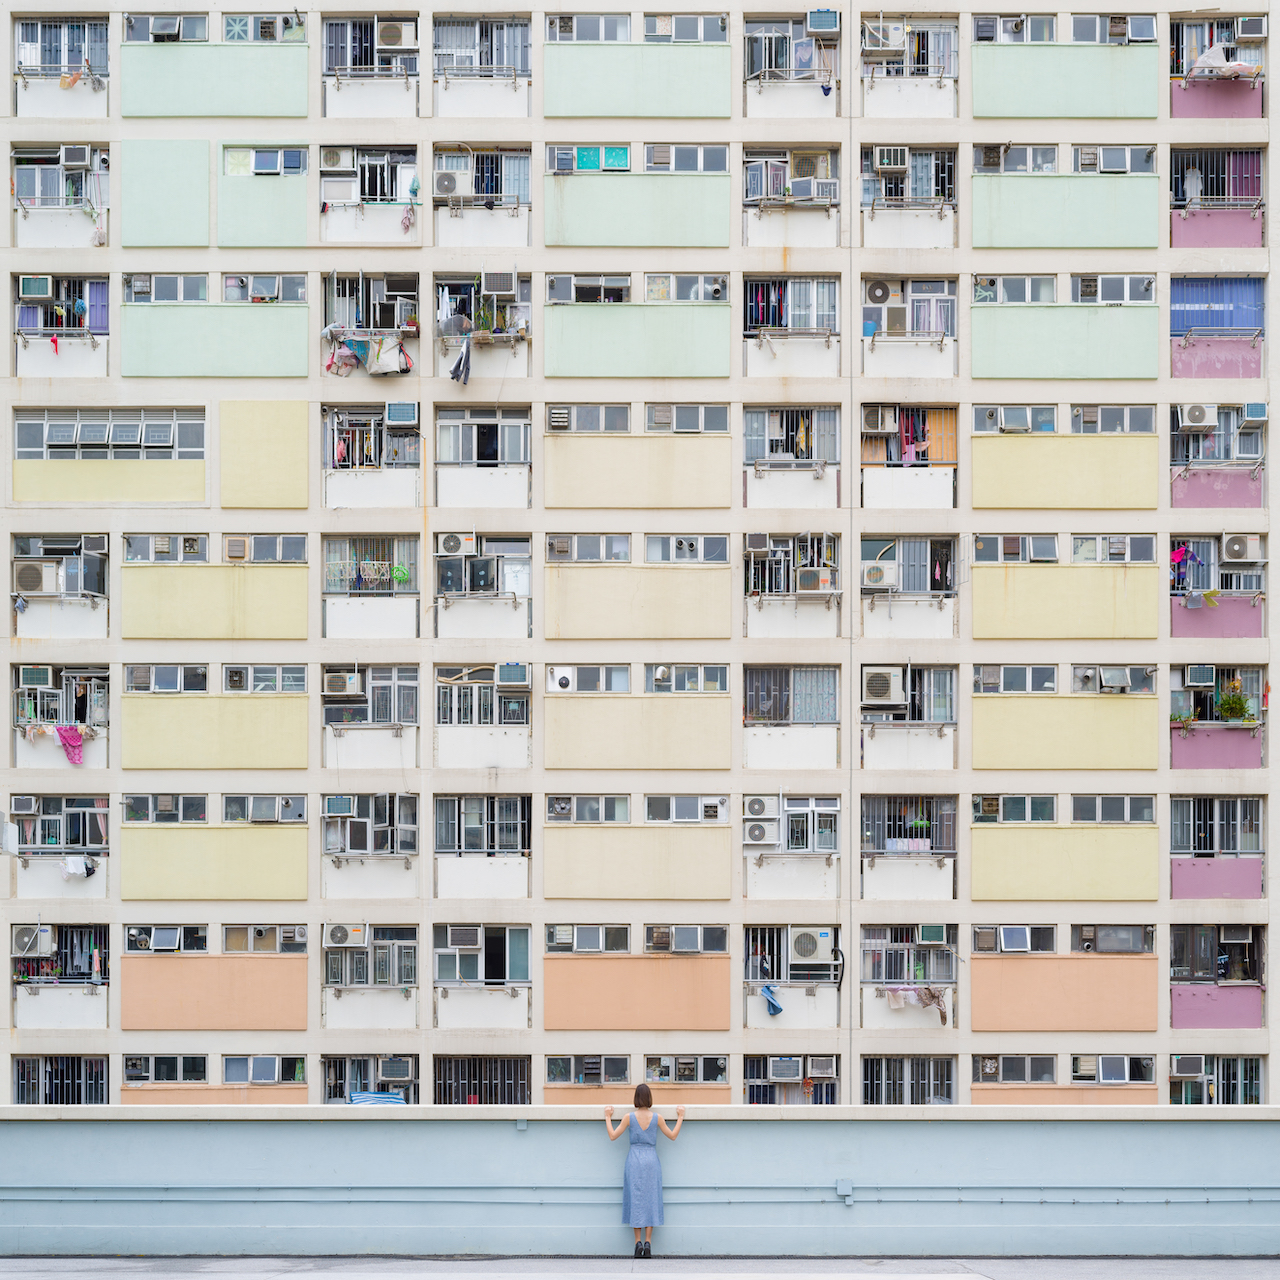 Annandaniel Anniset DrCuerda Anna Devís Daniel Rueda Curiocities Choi Hung Estate Cyance Fiction Hong Kong Colorful Rainbow Building Apartments Blue Dress